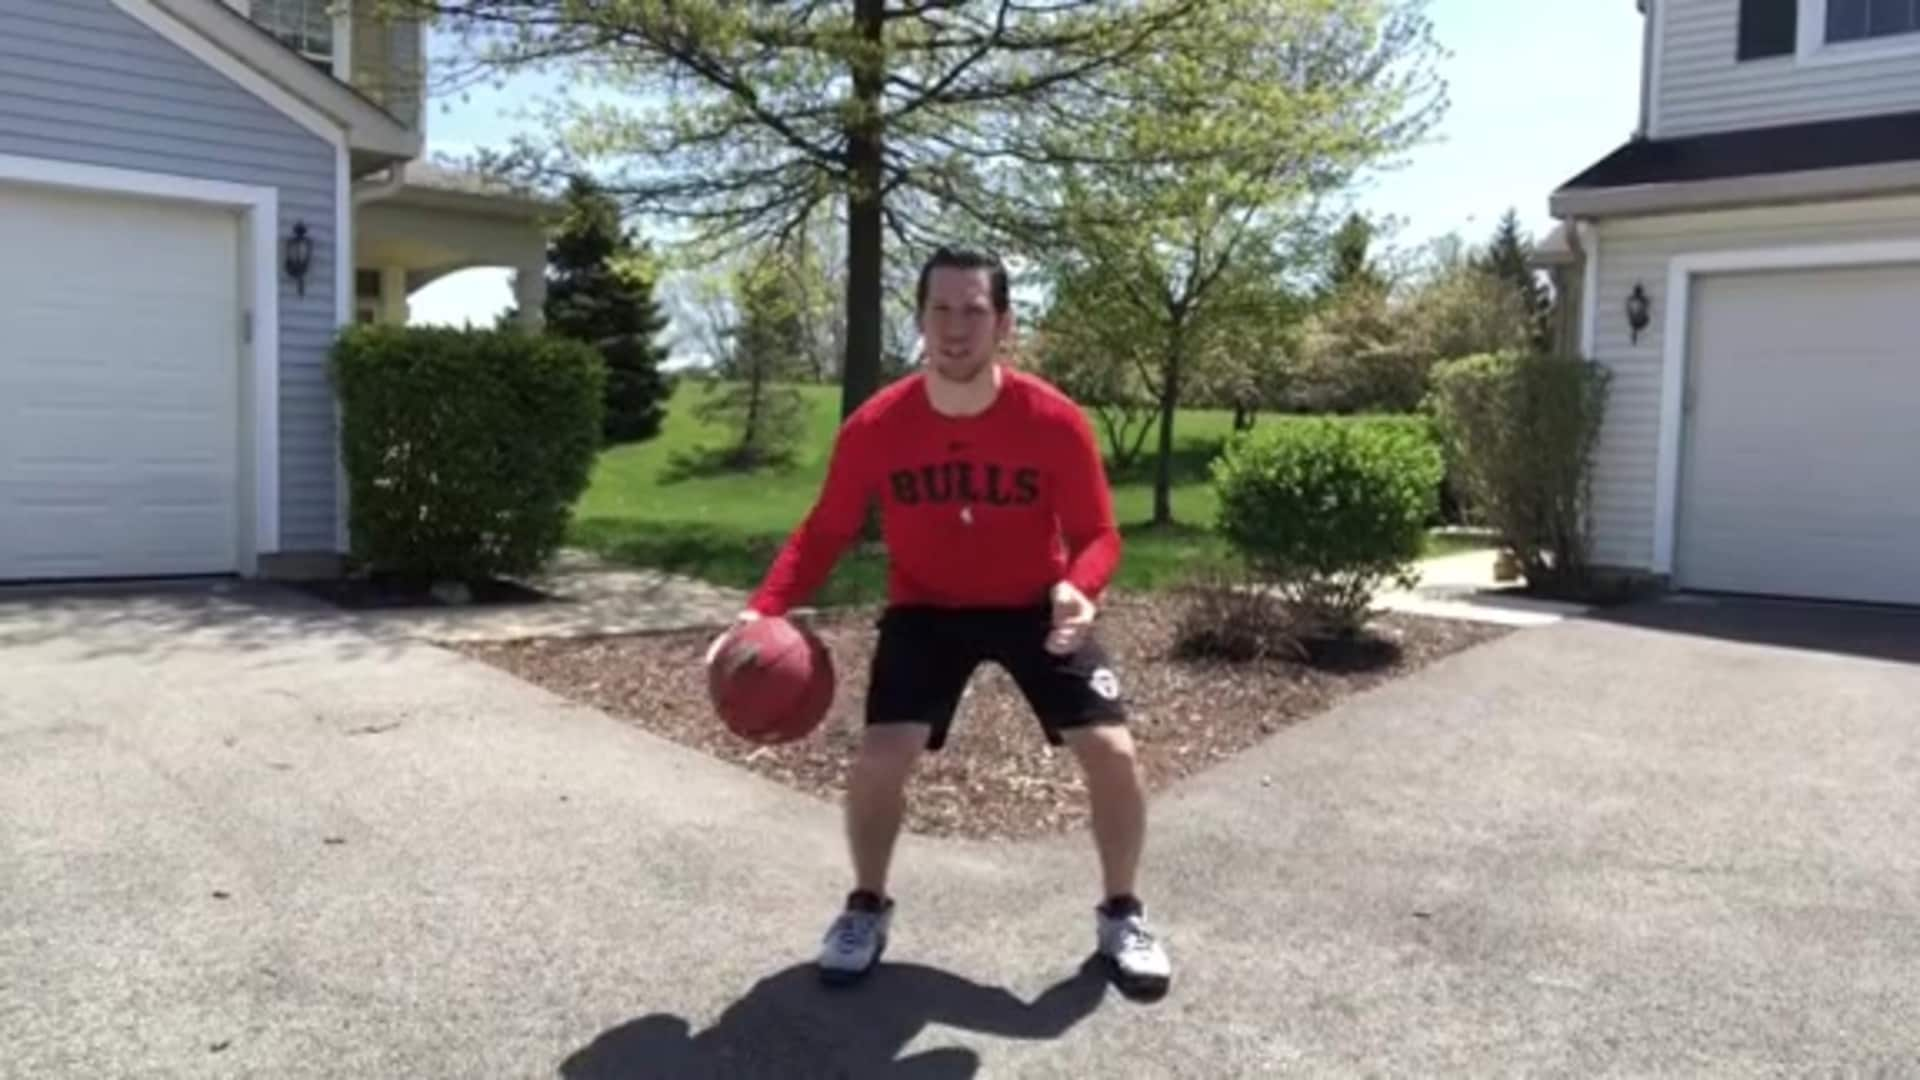 Youth Hoops Basketball Skills At Home: In-Out Crossover